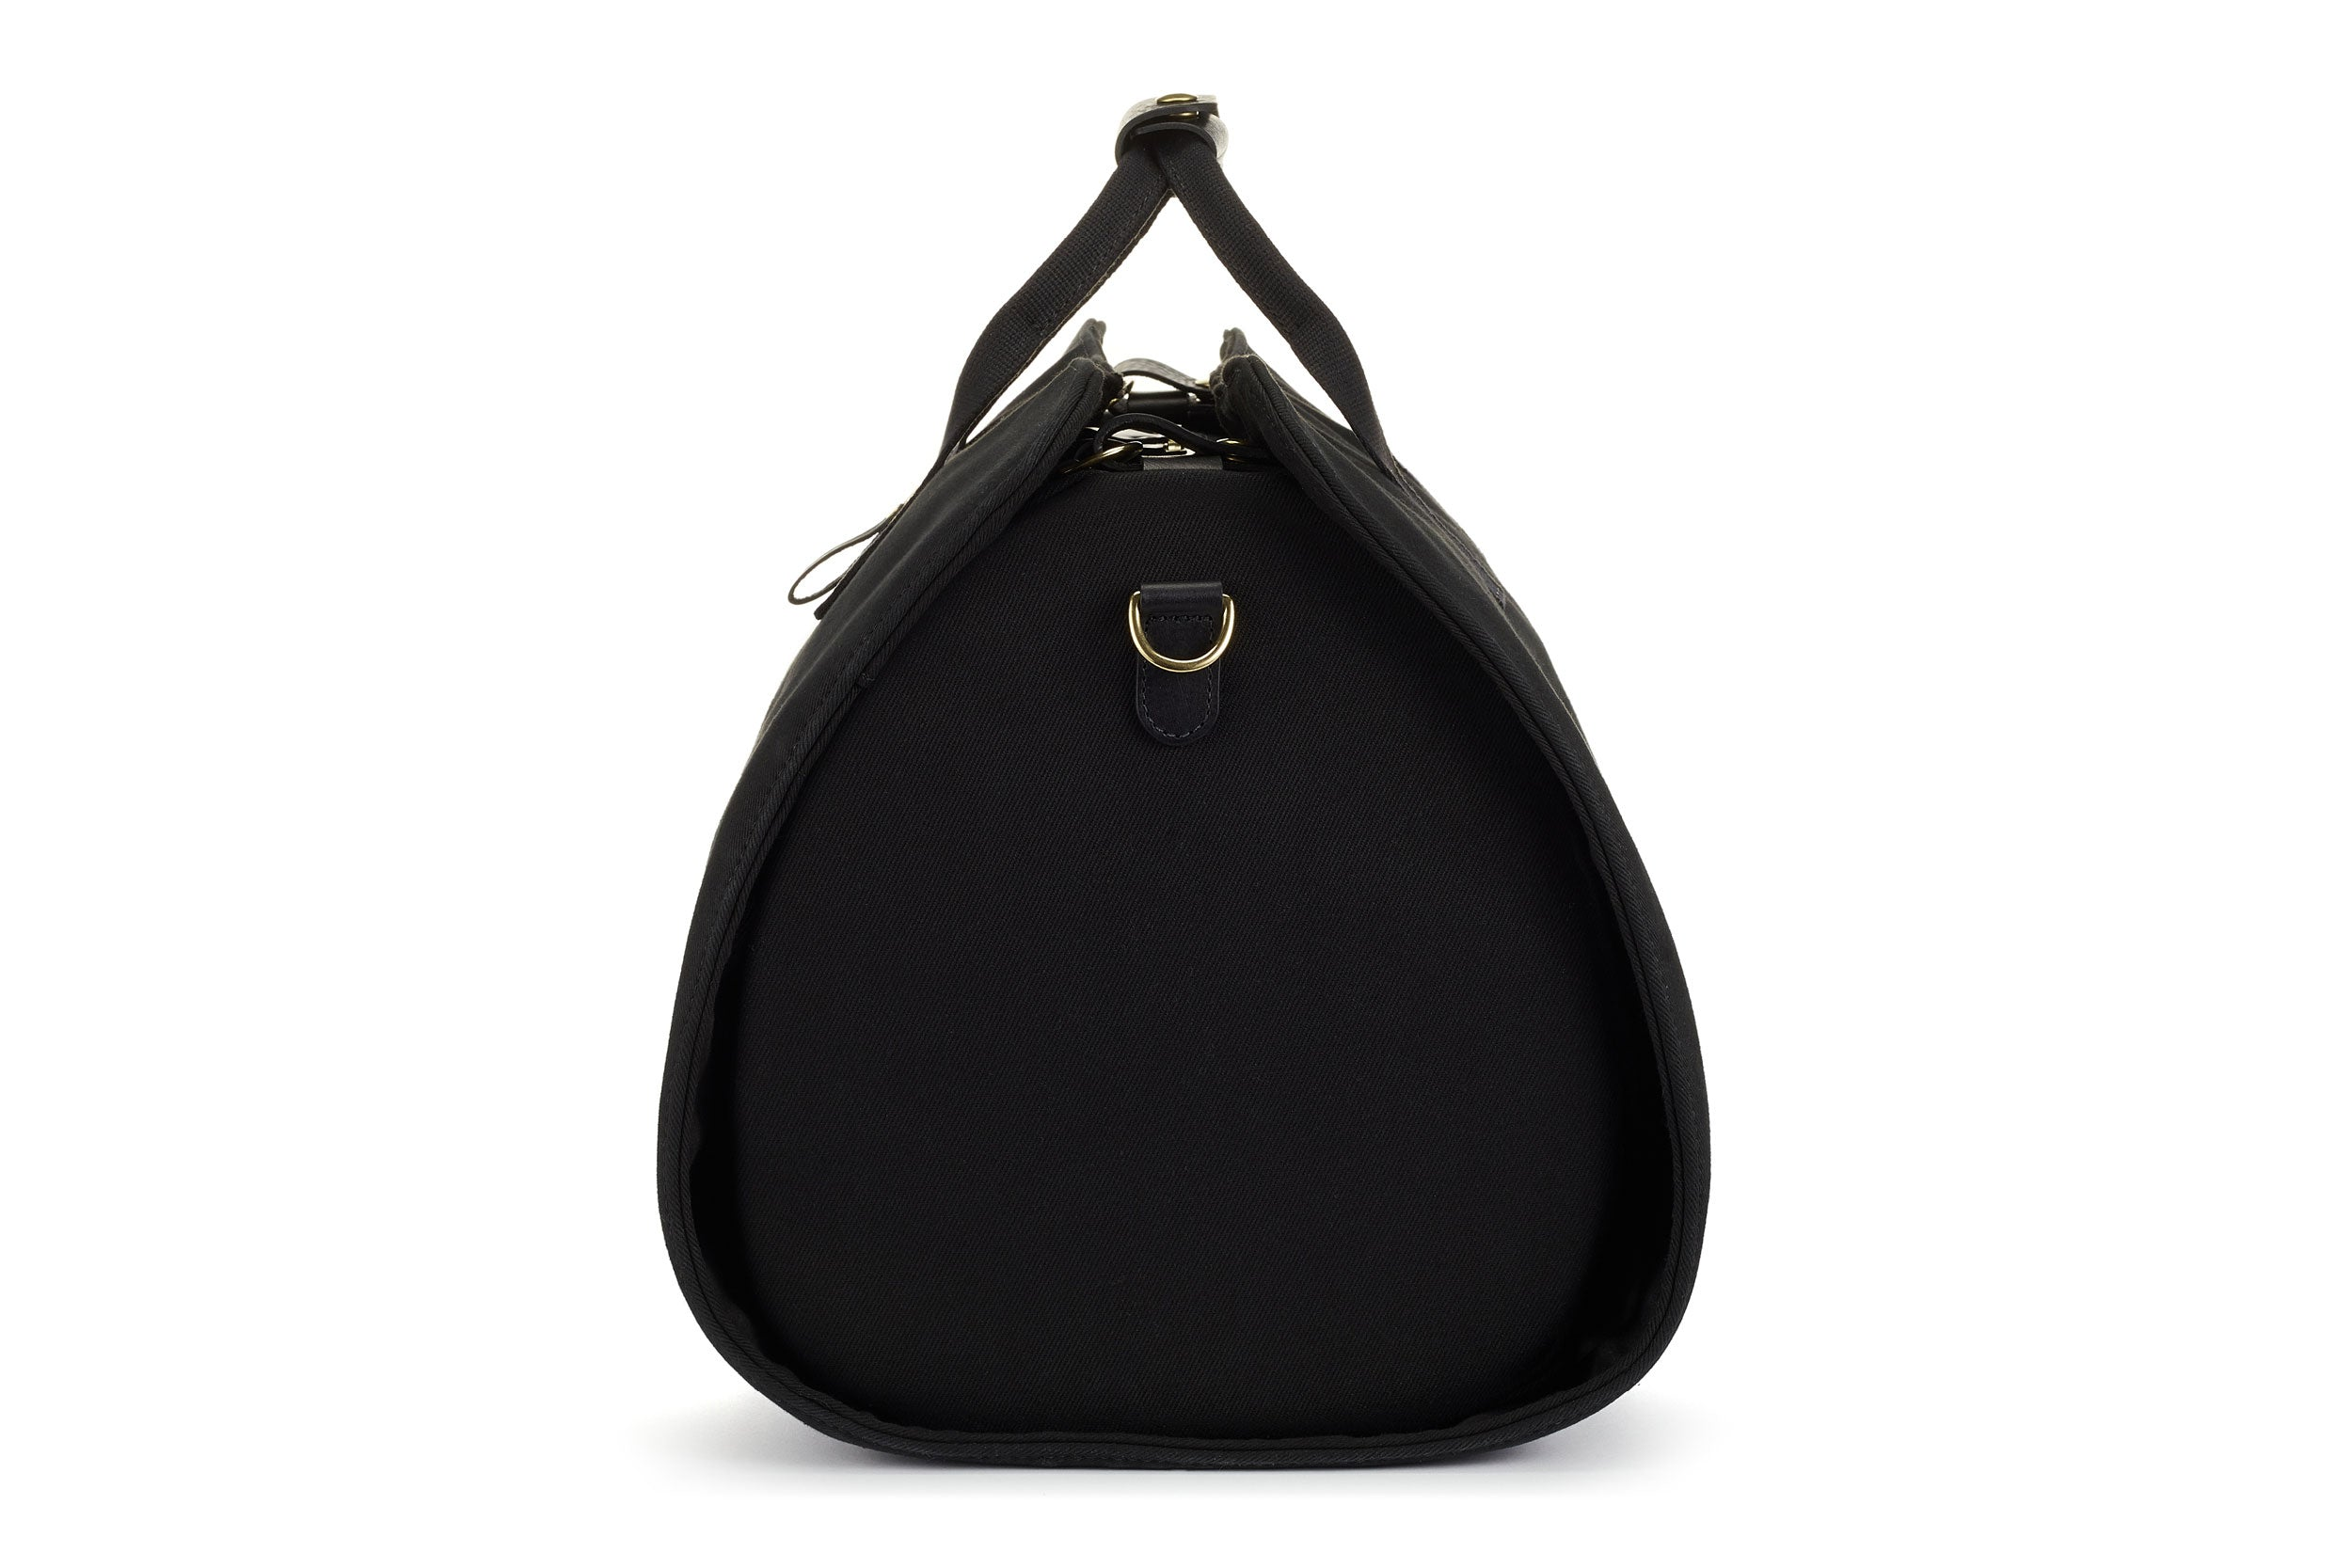 The S.C Holdall - Black